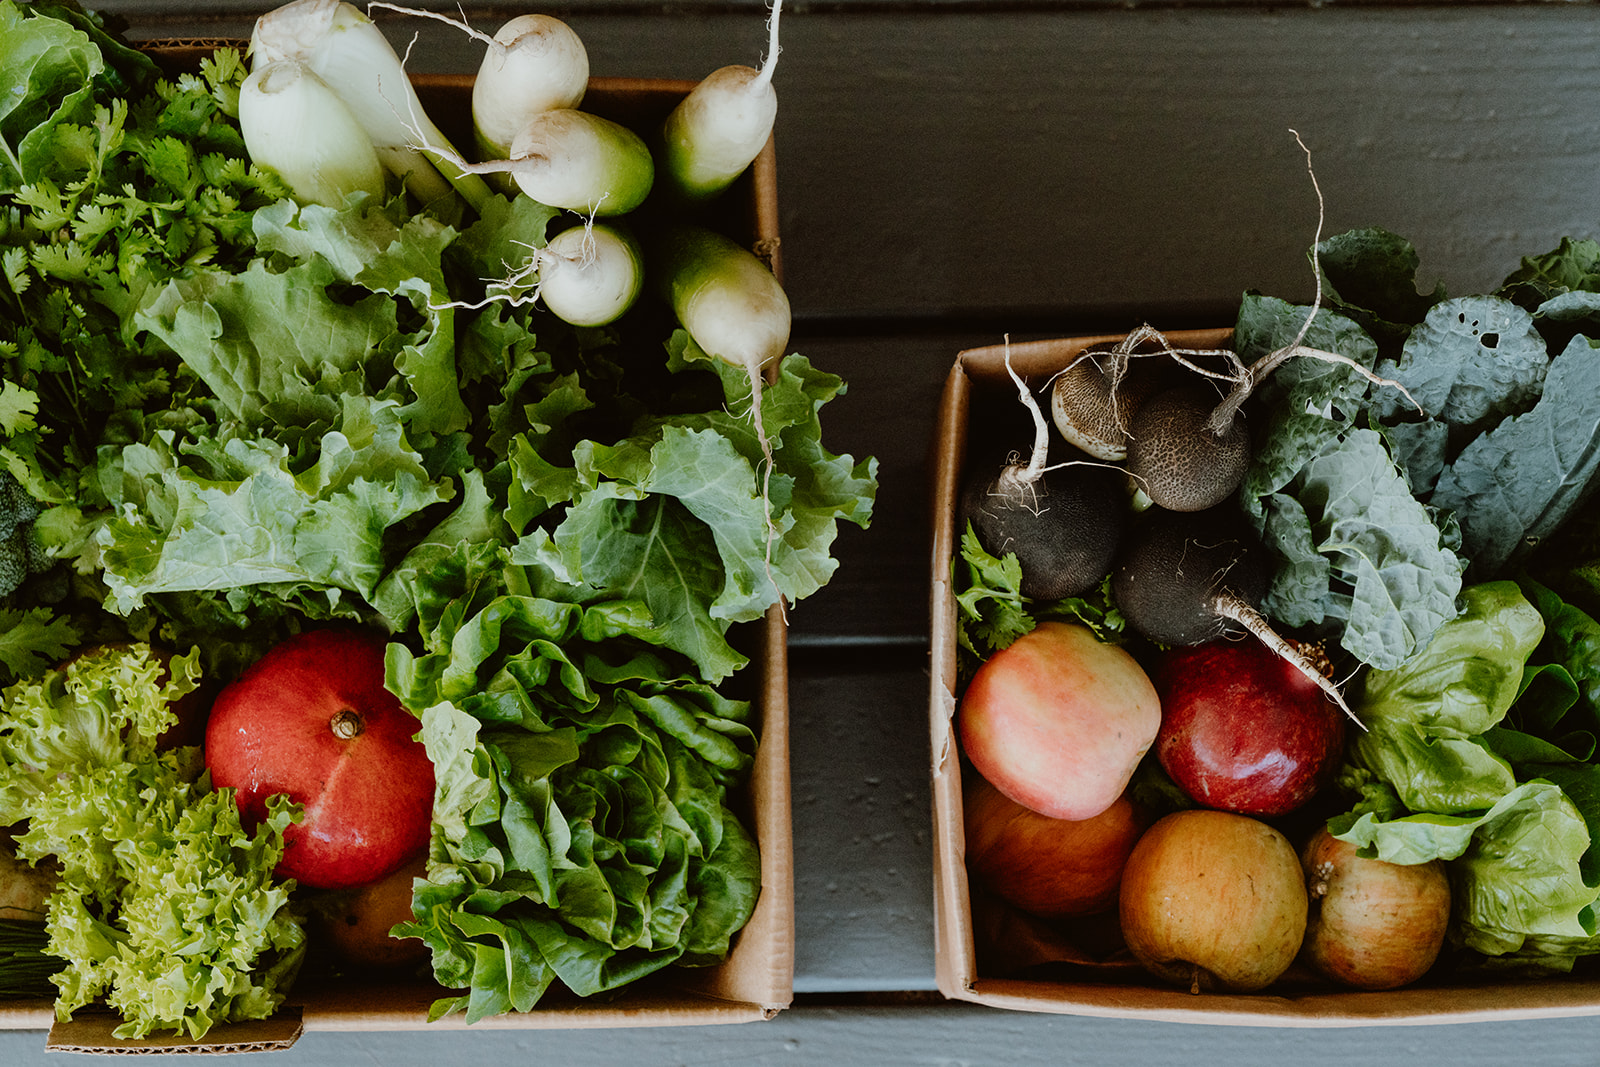 Top down shot of Harvest Boxes filled with fresh produce.